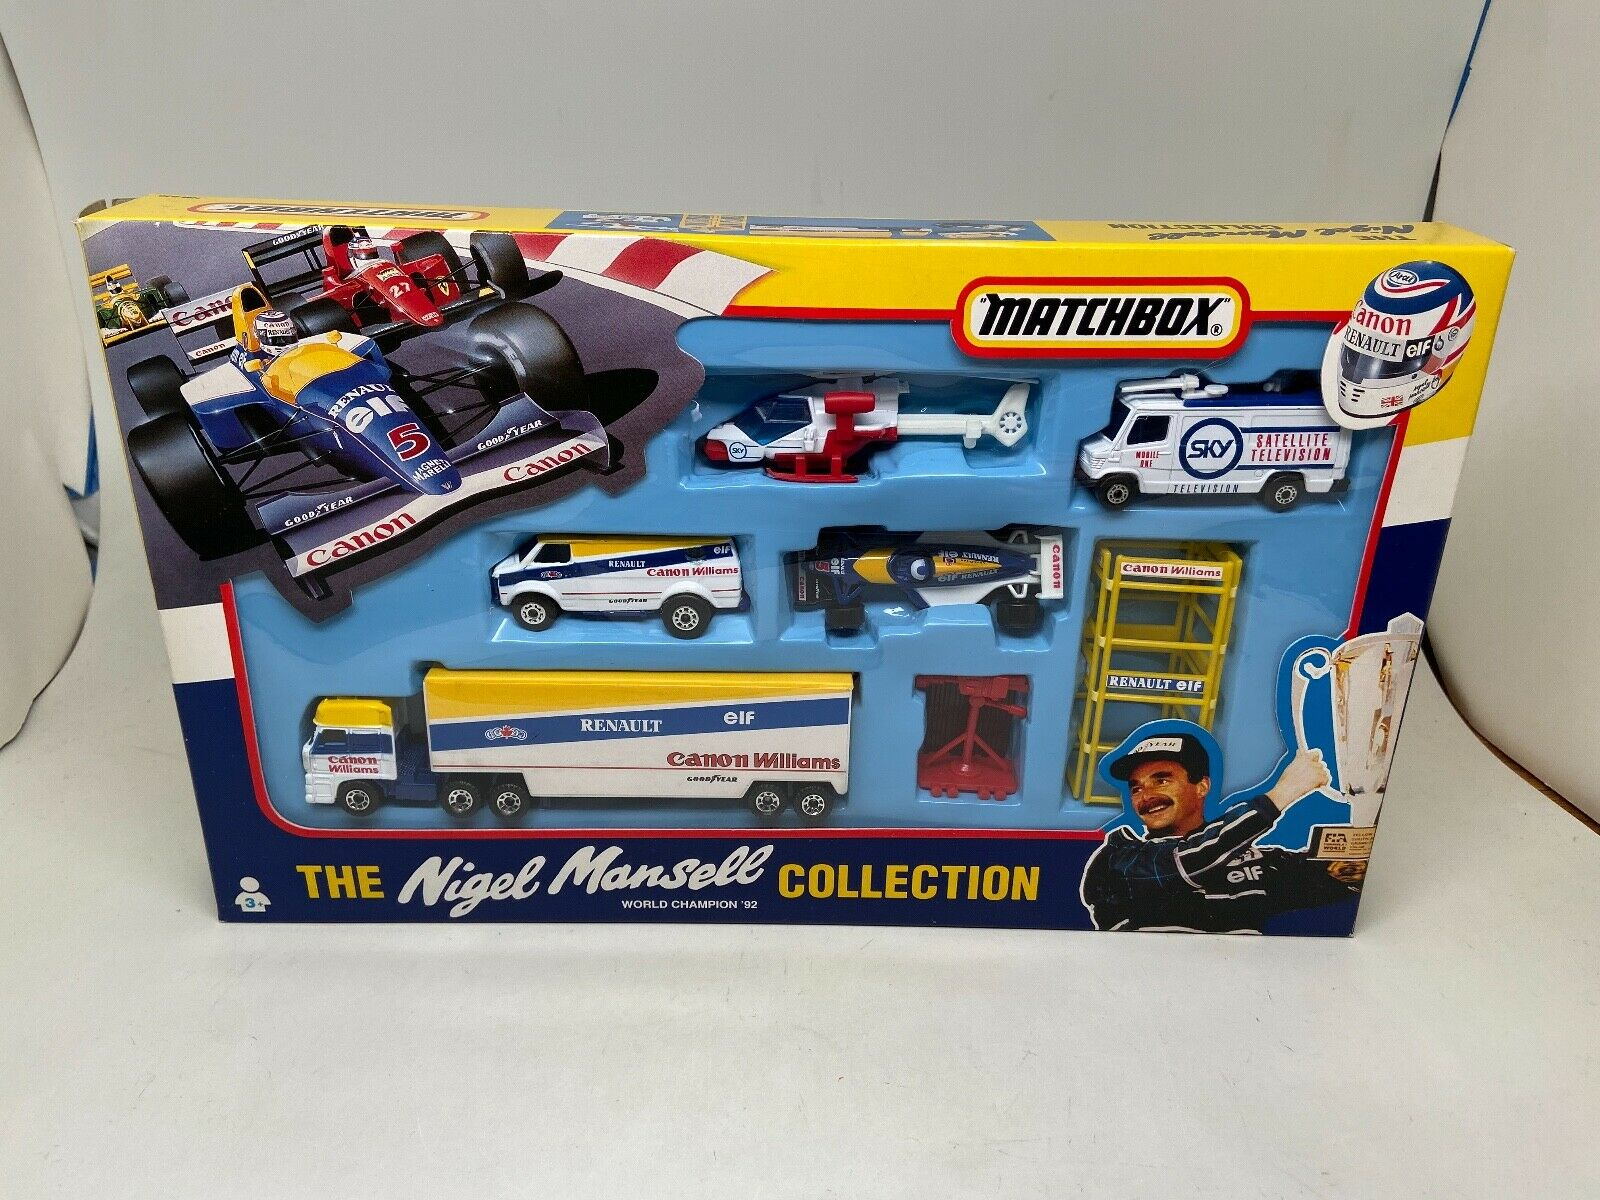 MATCHBOX-THE NIGEL MANSELL COLLECTION-WORLD CHAMPION 92(RENAULT)--1993-LOOK